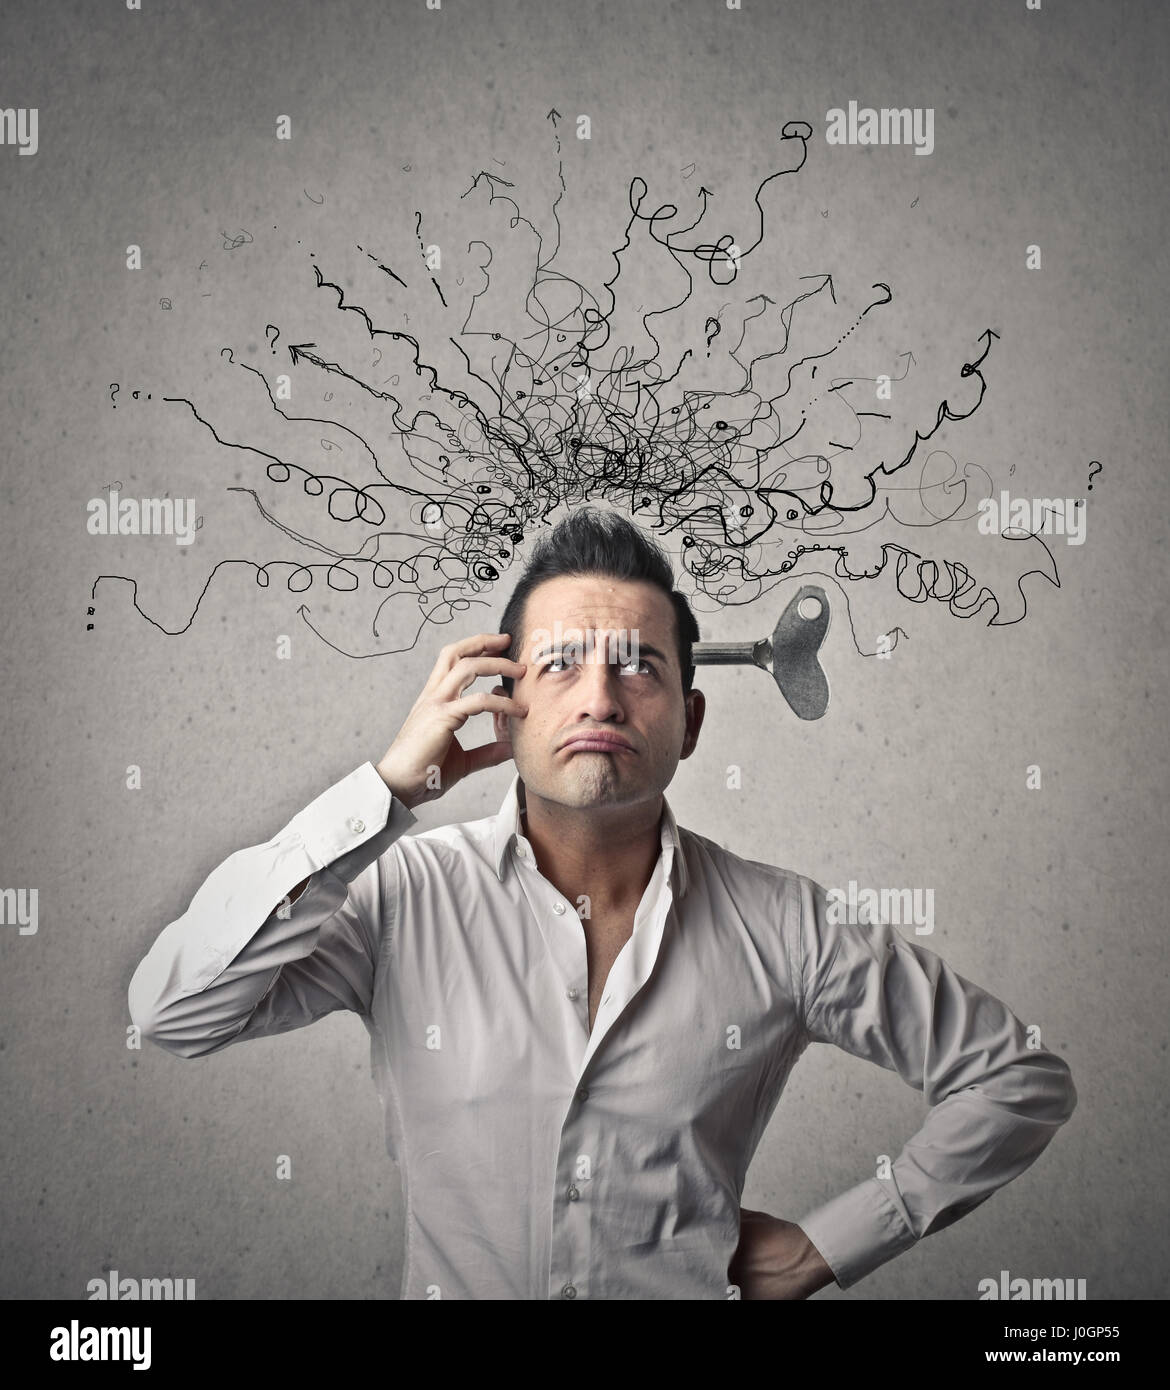 Businessman with a mess in his head - Stock Image